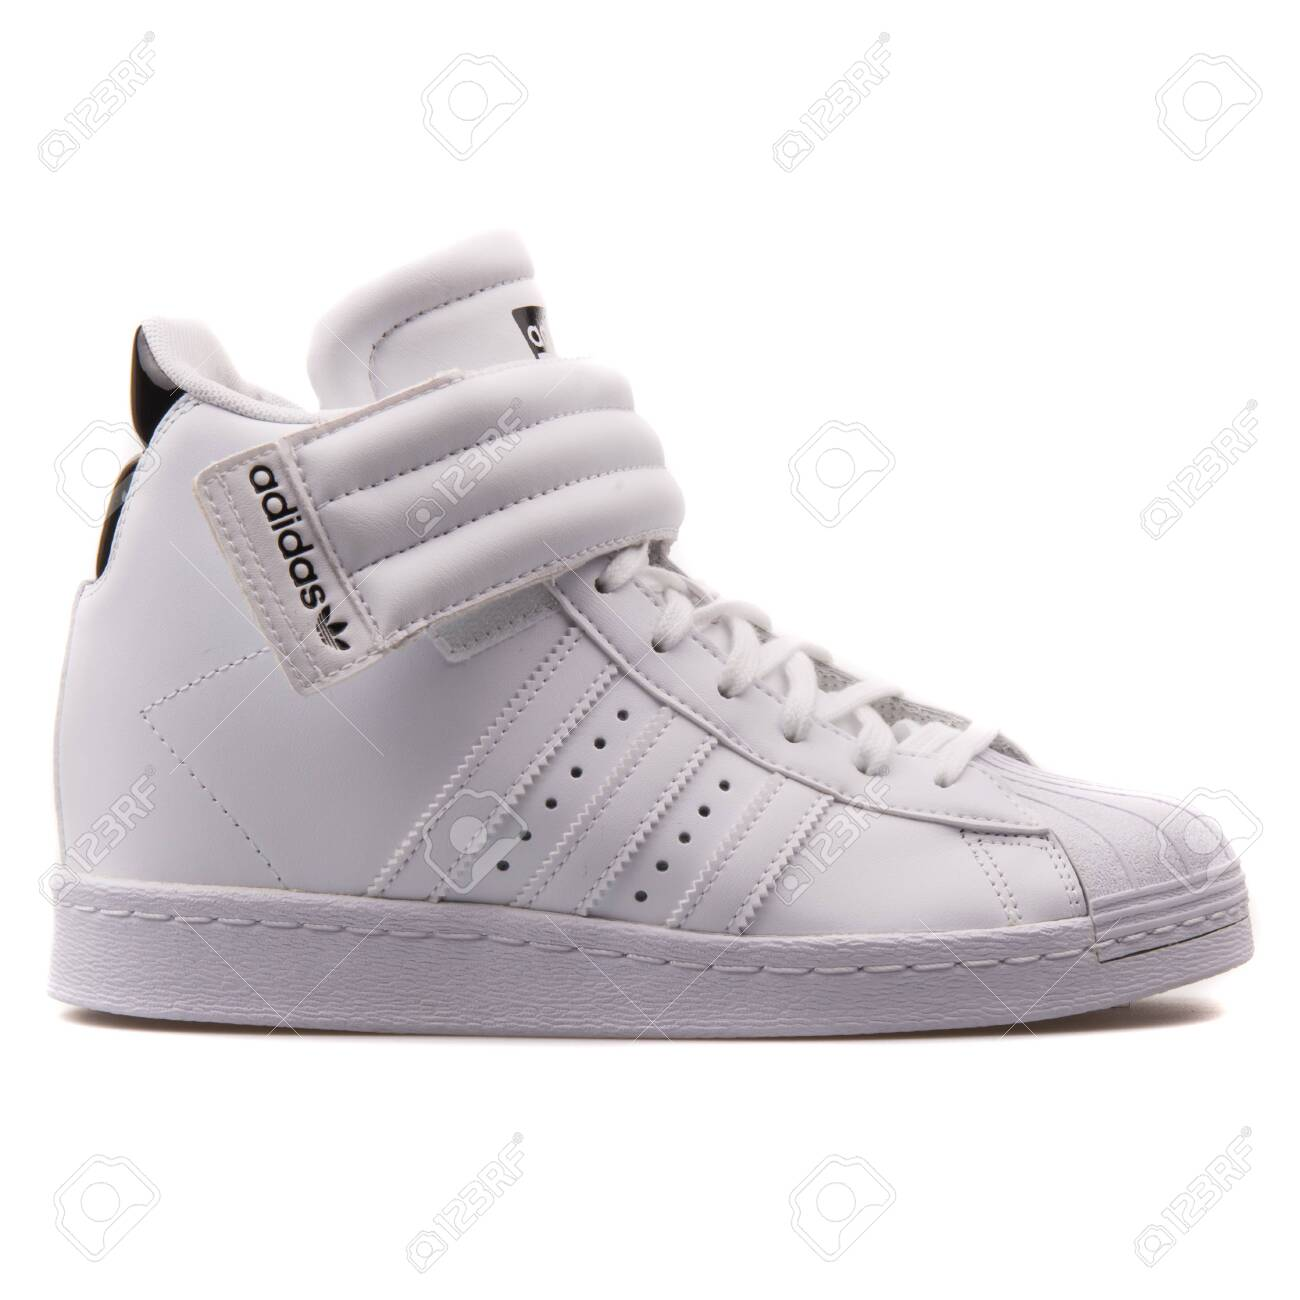 adidas superstar up black and white